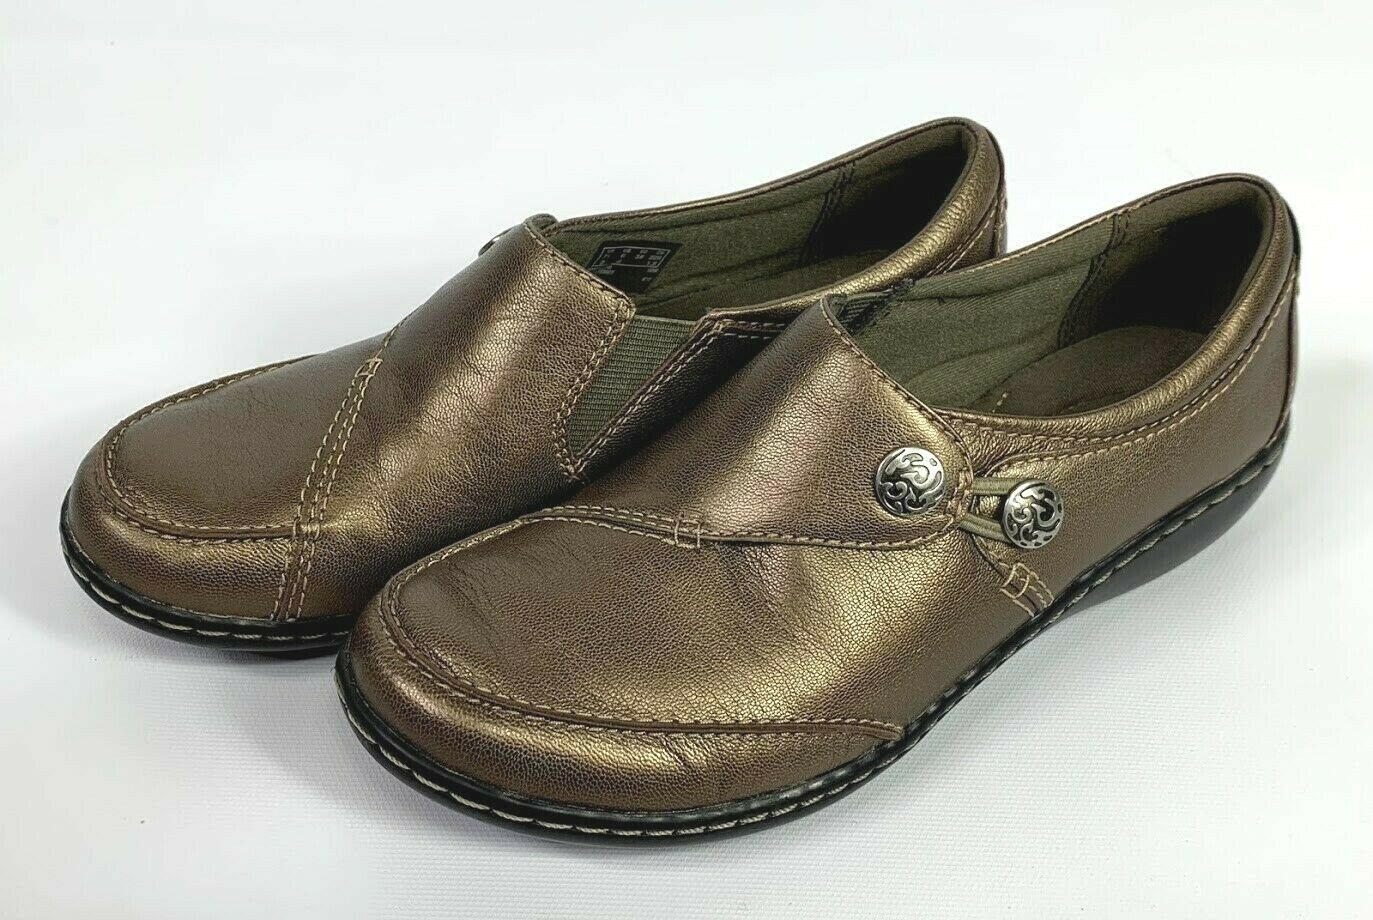 Clarks Ashland Lane Women's Slip On Flat Loafers Pewter Size 6 M NWOB